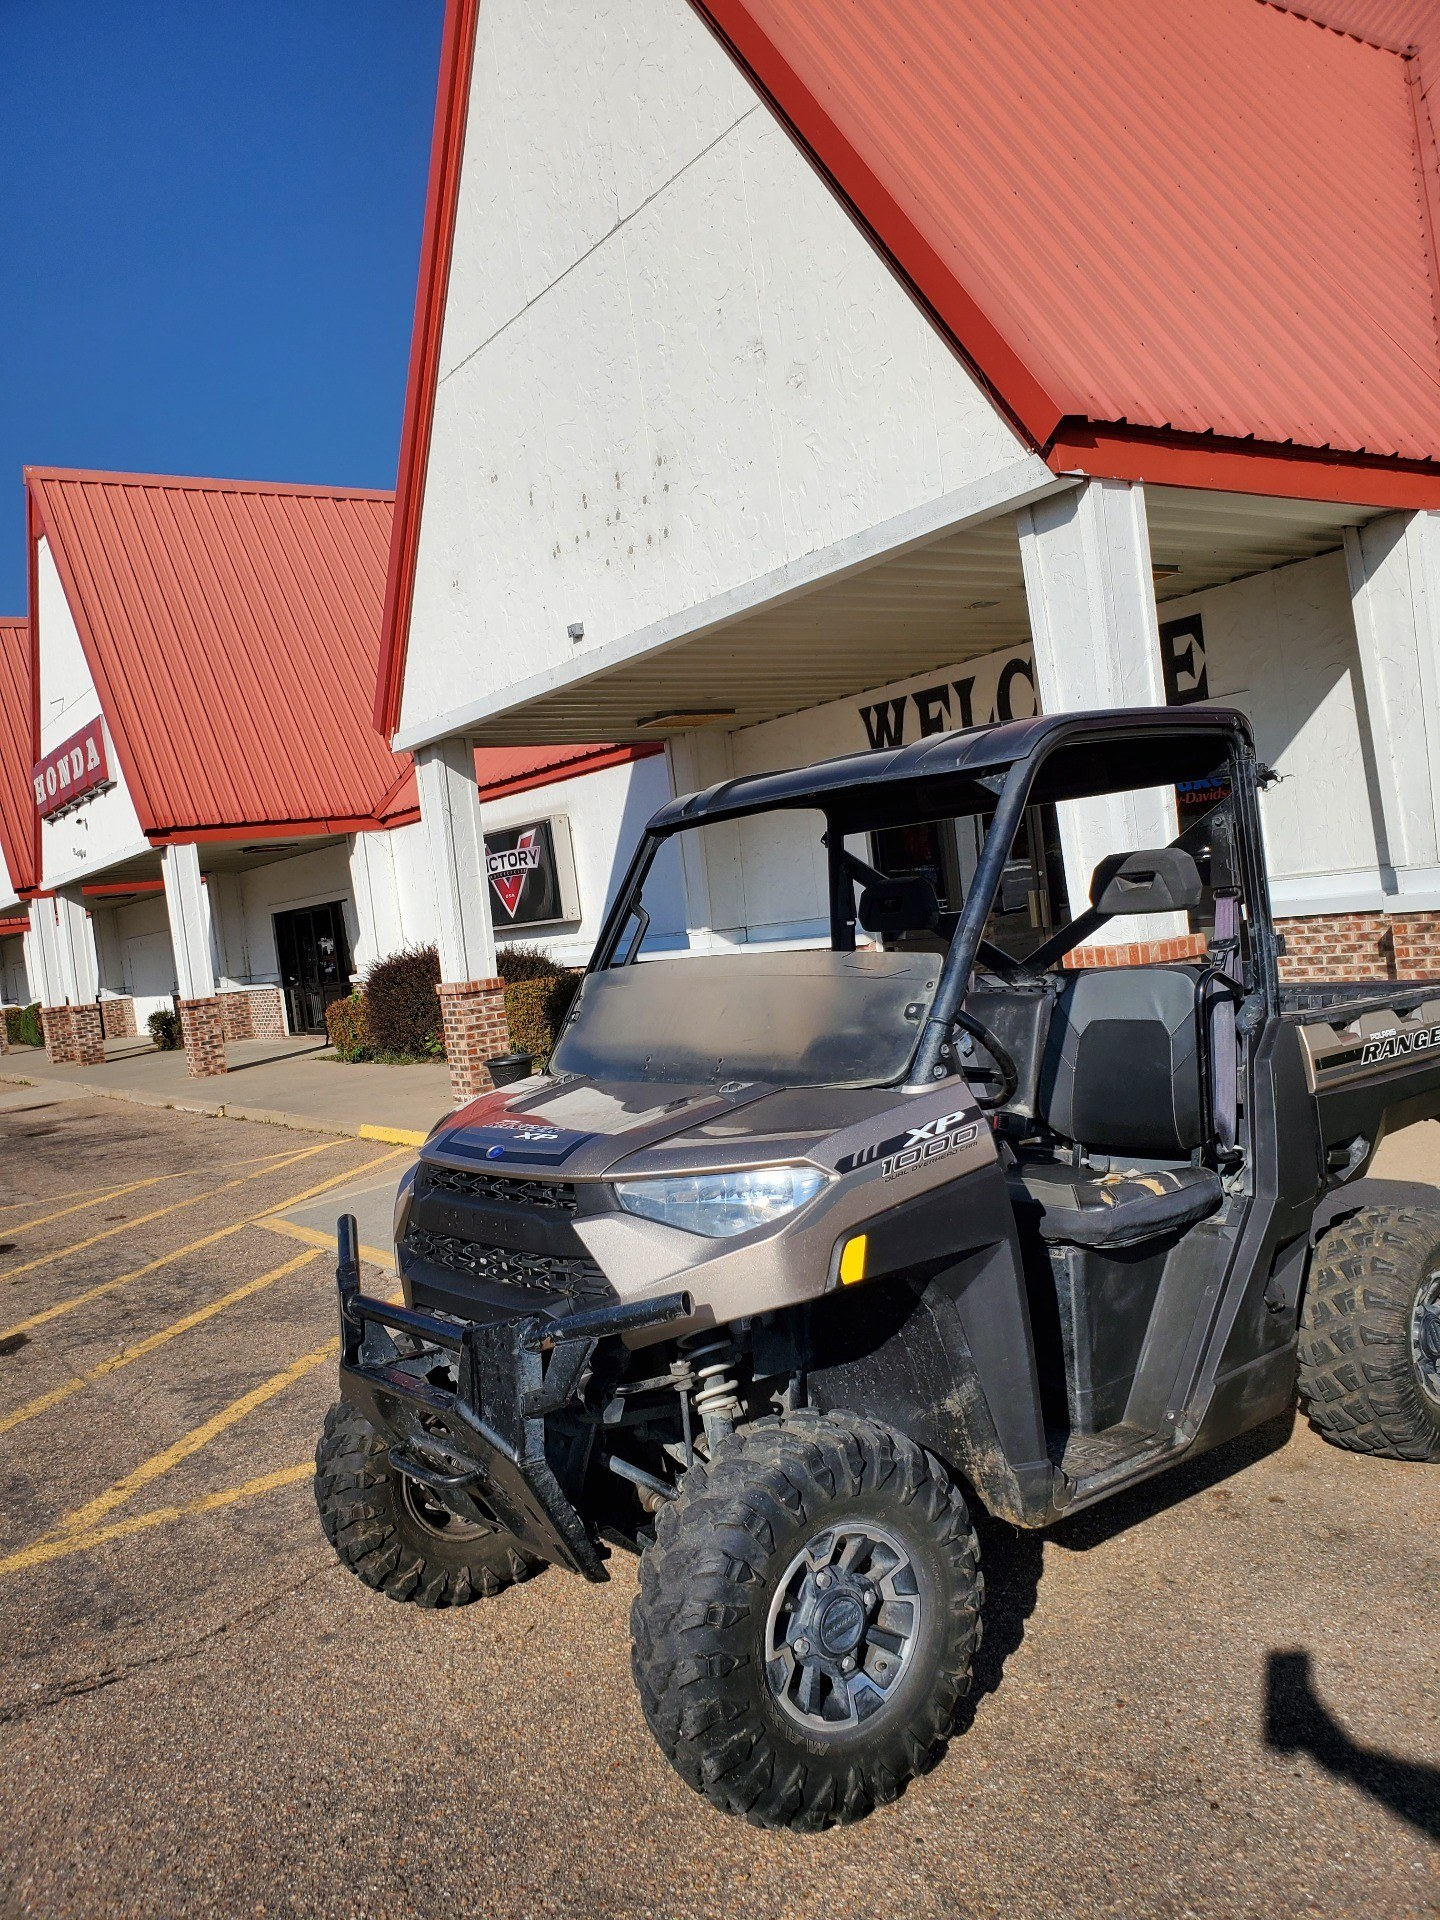 2018 Polaris Ranger XP 1000 EPS in North Platte, Nebraska - Photo 1